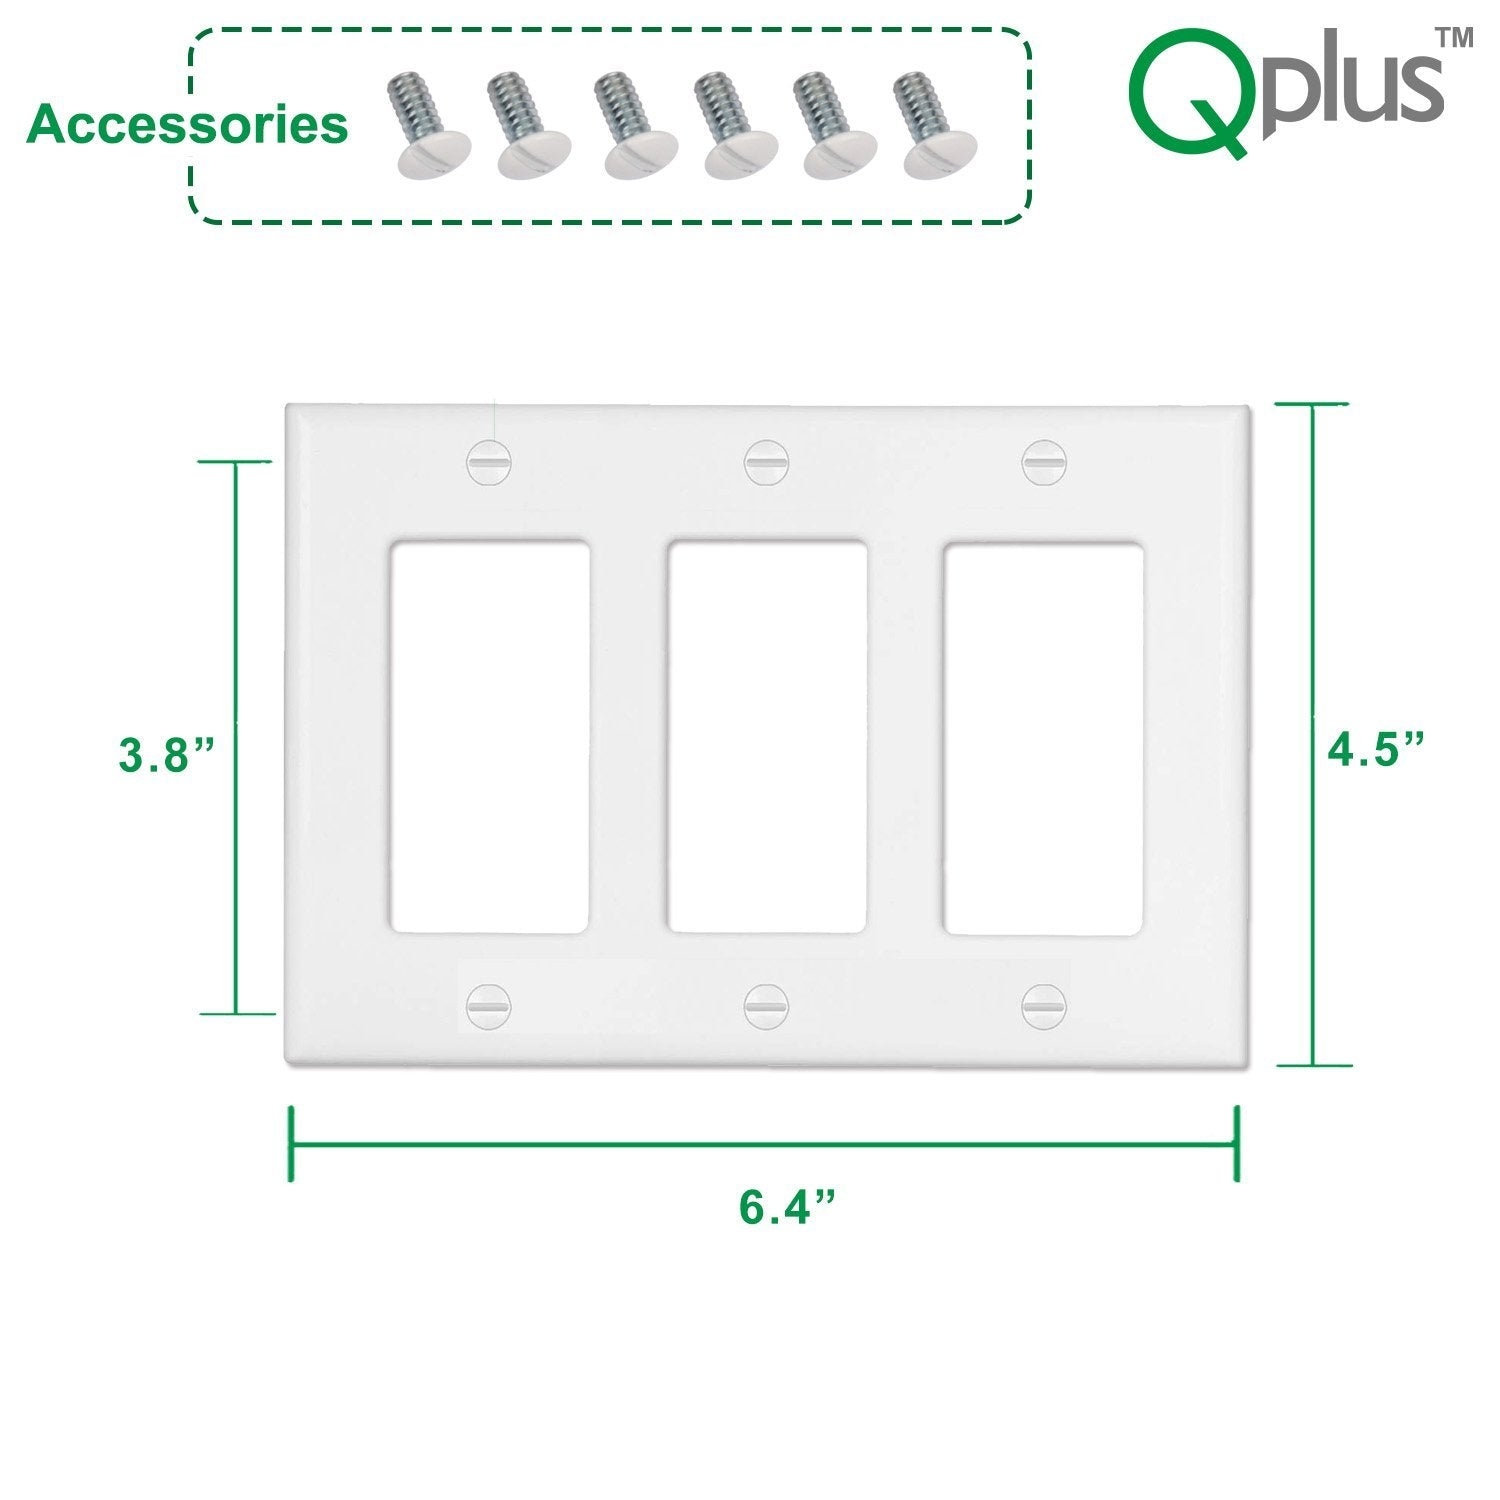 QPlus 3-Gang with Screwless Wall Plate, Standard Outlet Cover for Light Switch, Dimmer, GFCI and USB Receptacle for Residential and Commercial Use - White - QPlus Home - Brighten Your Life